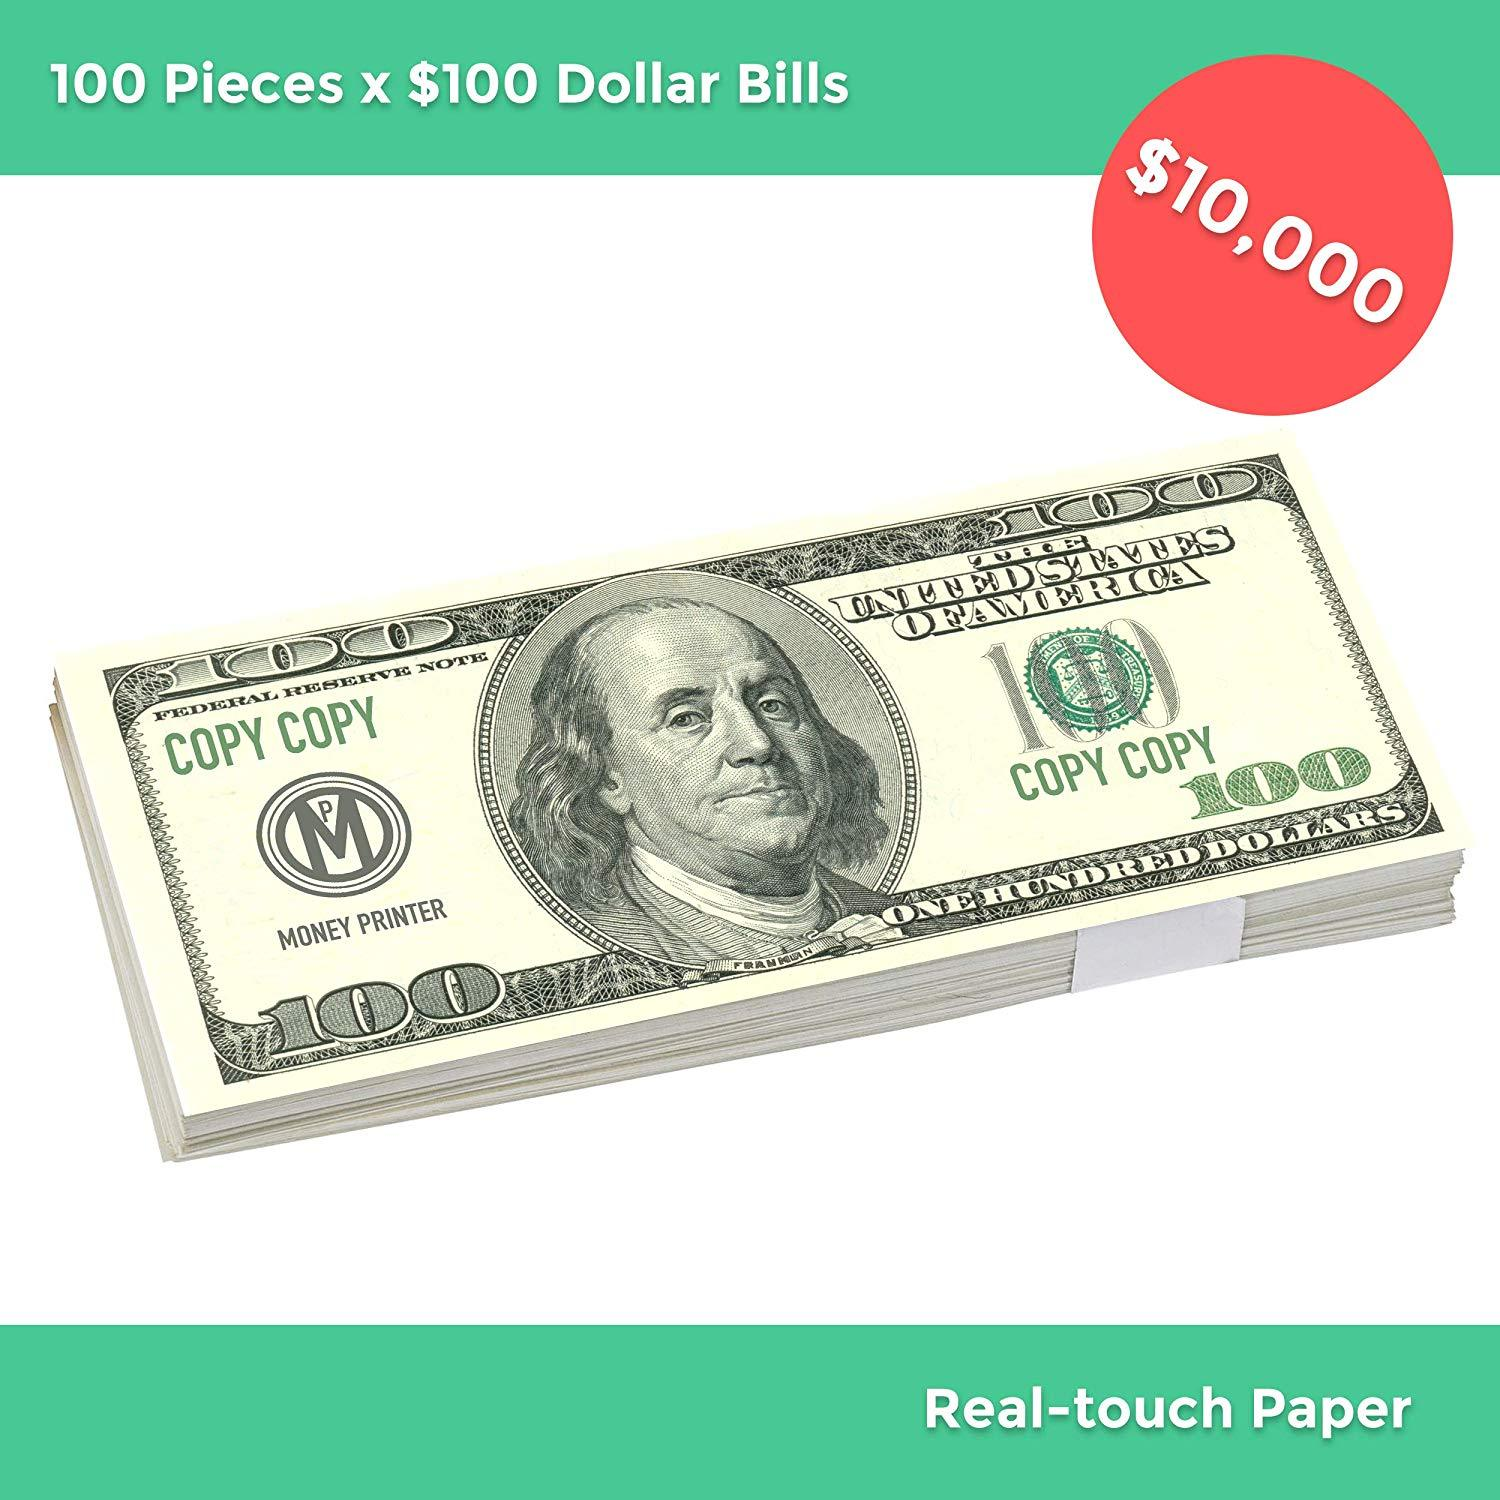 Movie Prop Money - oddgifts.com